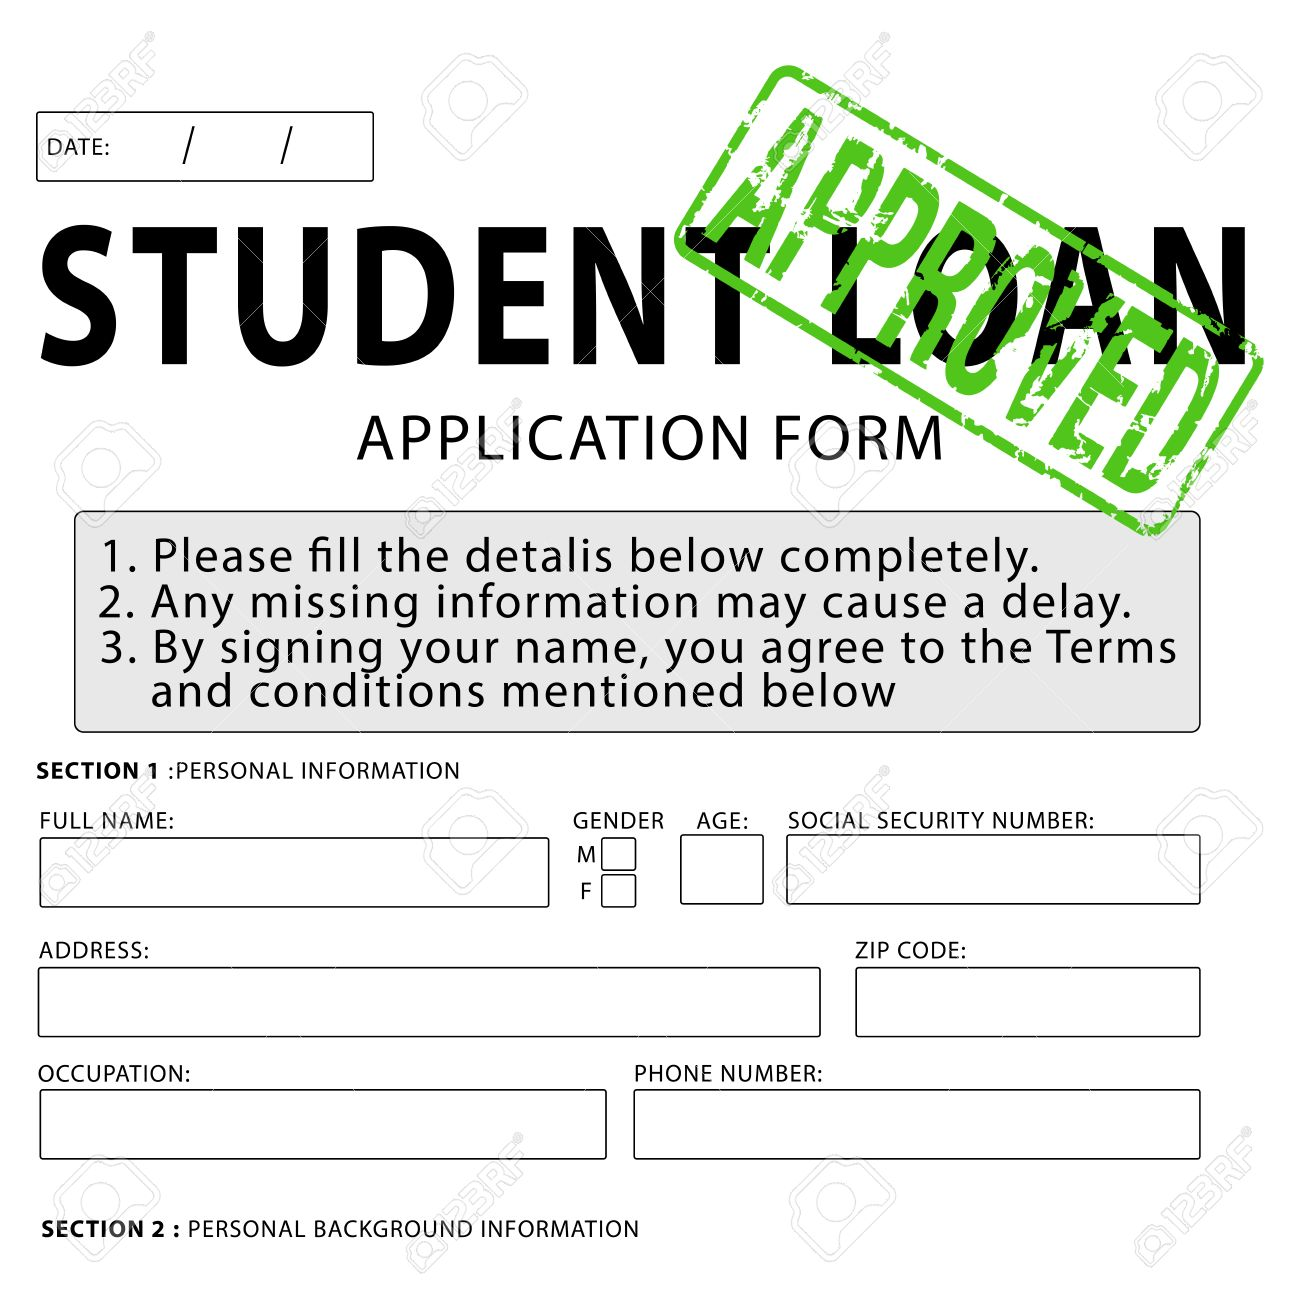 Student Loan Application Form With Green Approved Rubber Stamp Stock ...